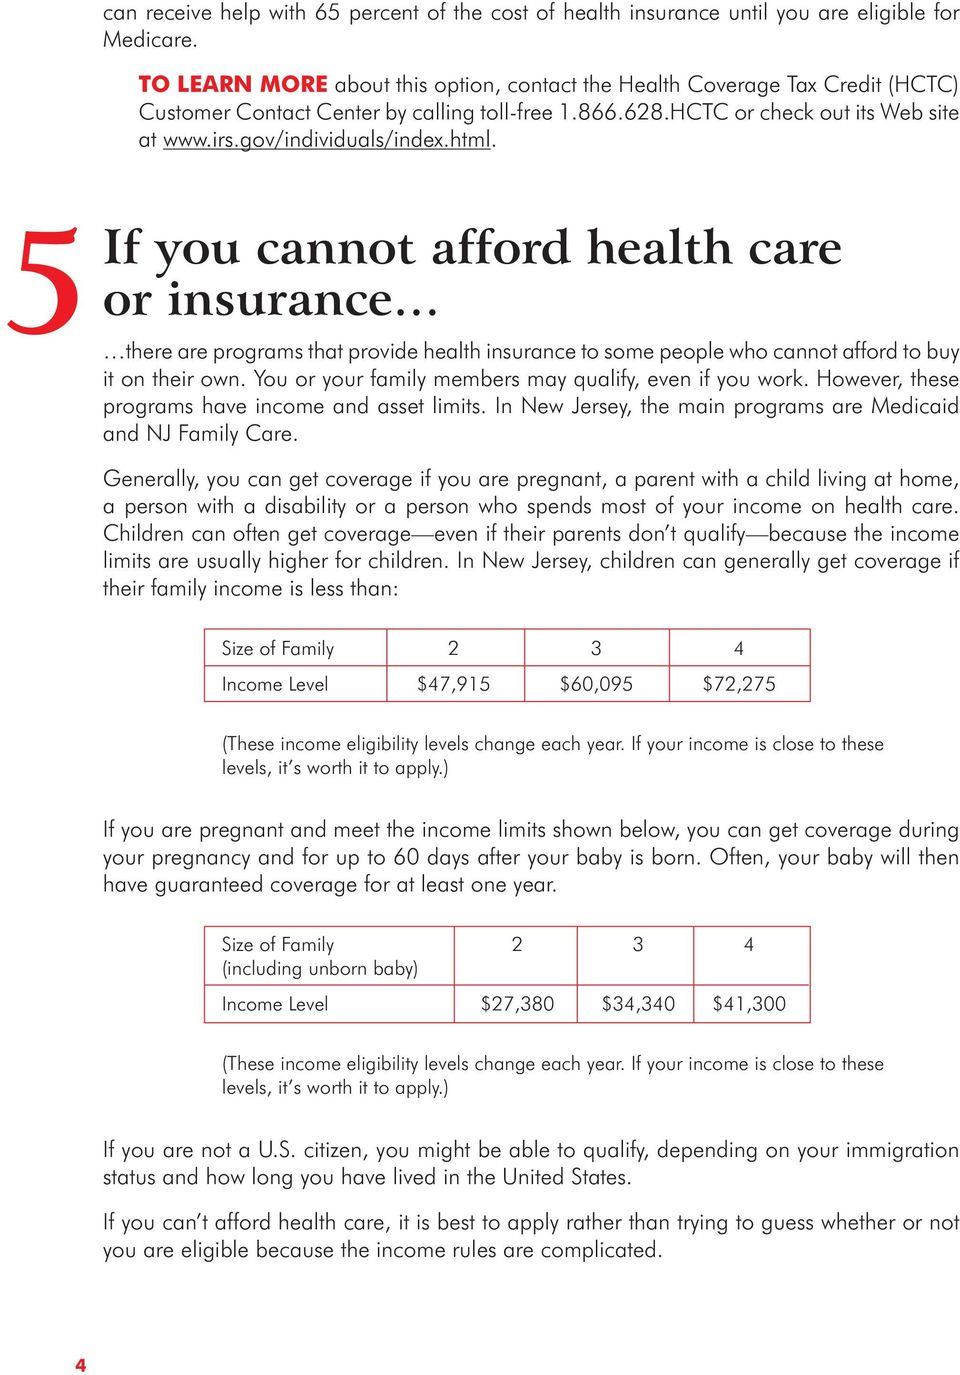 html. 5 If you cannot afford health care or insurance there are programs that provide health insurance to some people who cannot afford to buy it on their own.